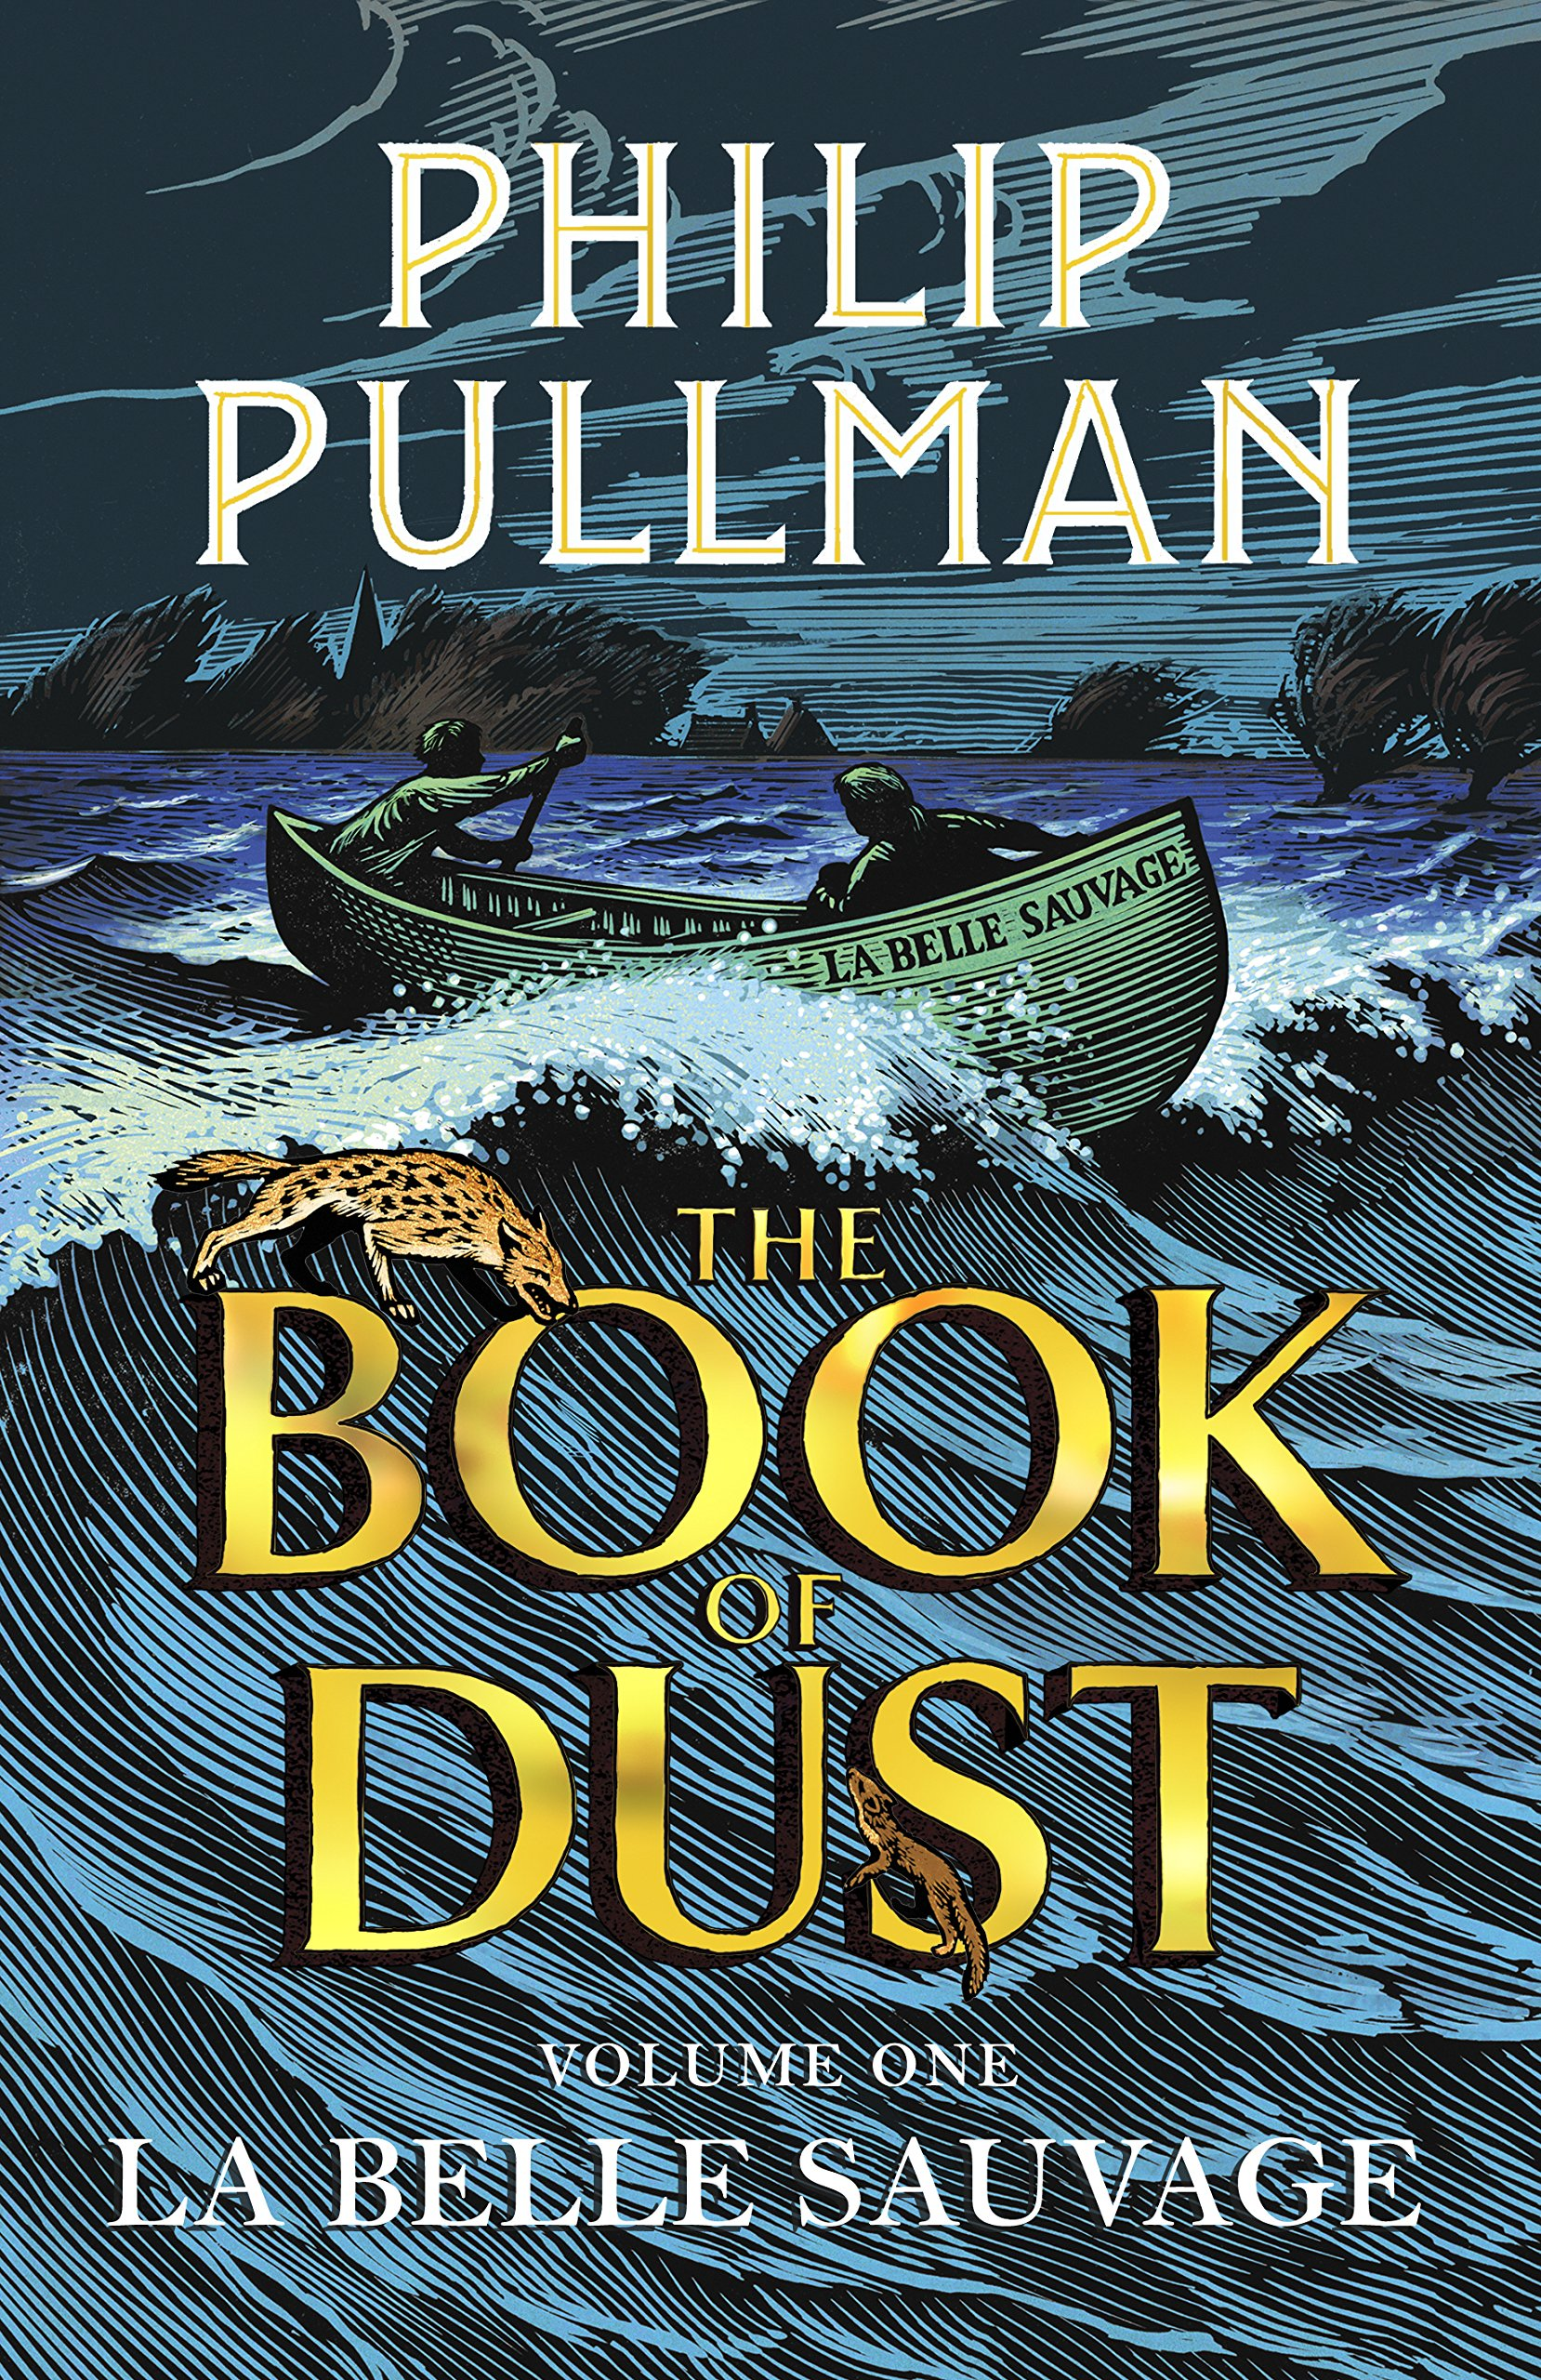 Image result for The Book of Dust: La Belle Sauvage